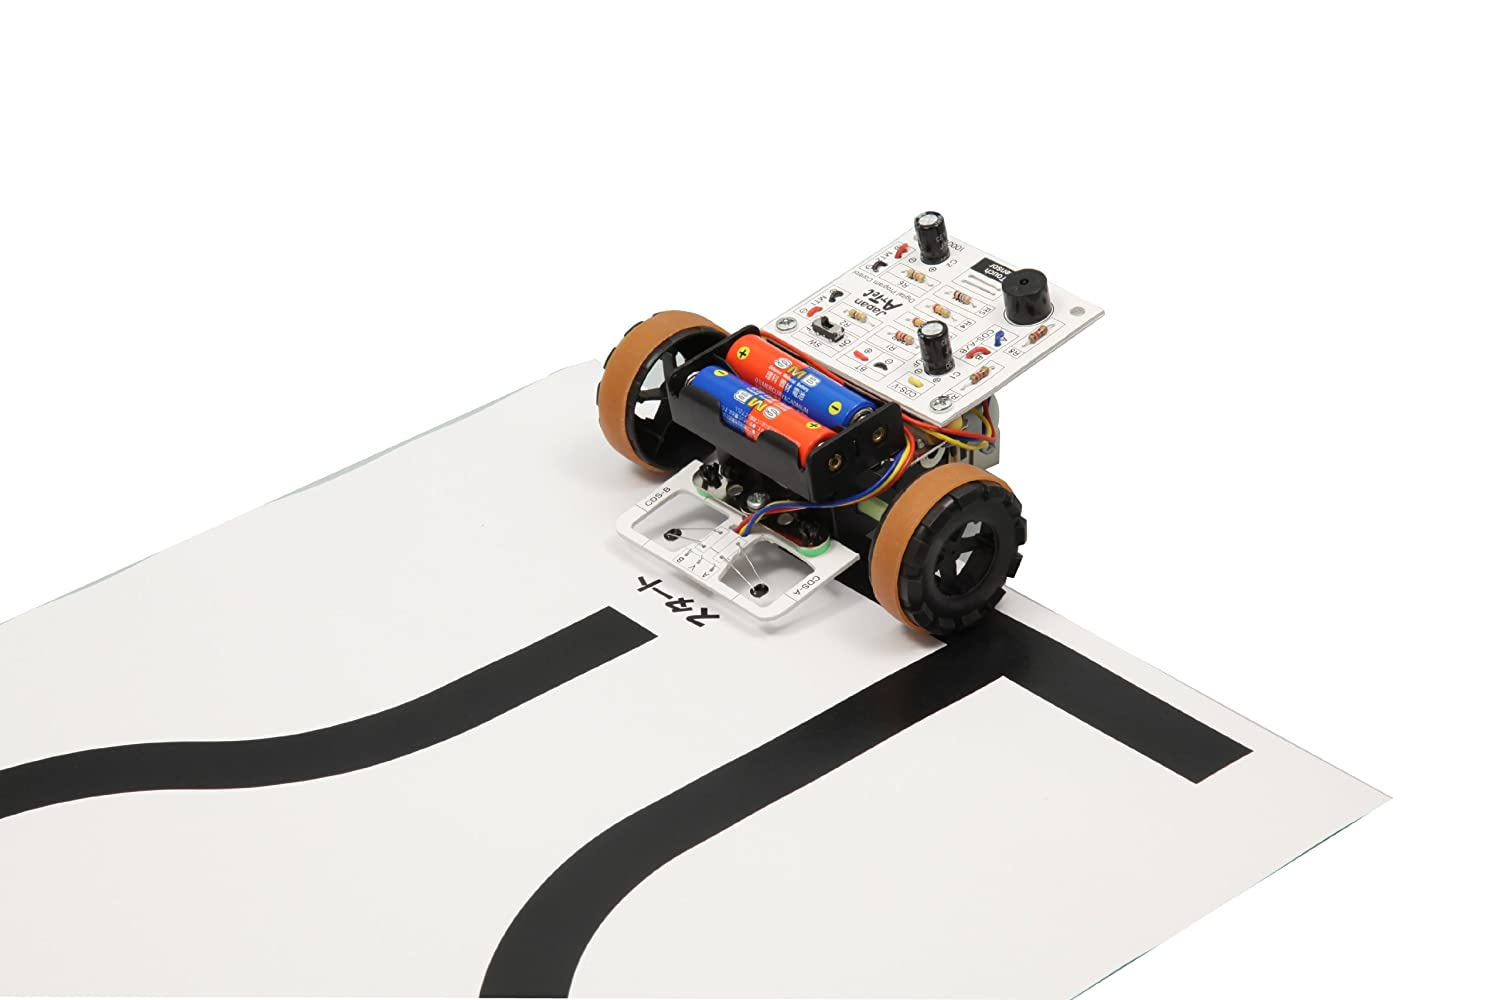 ducation 93559 PC programmable tra-age Robot Artec